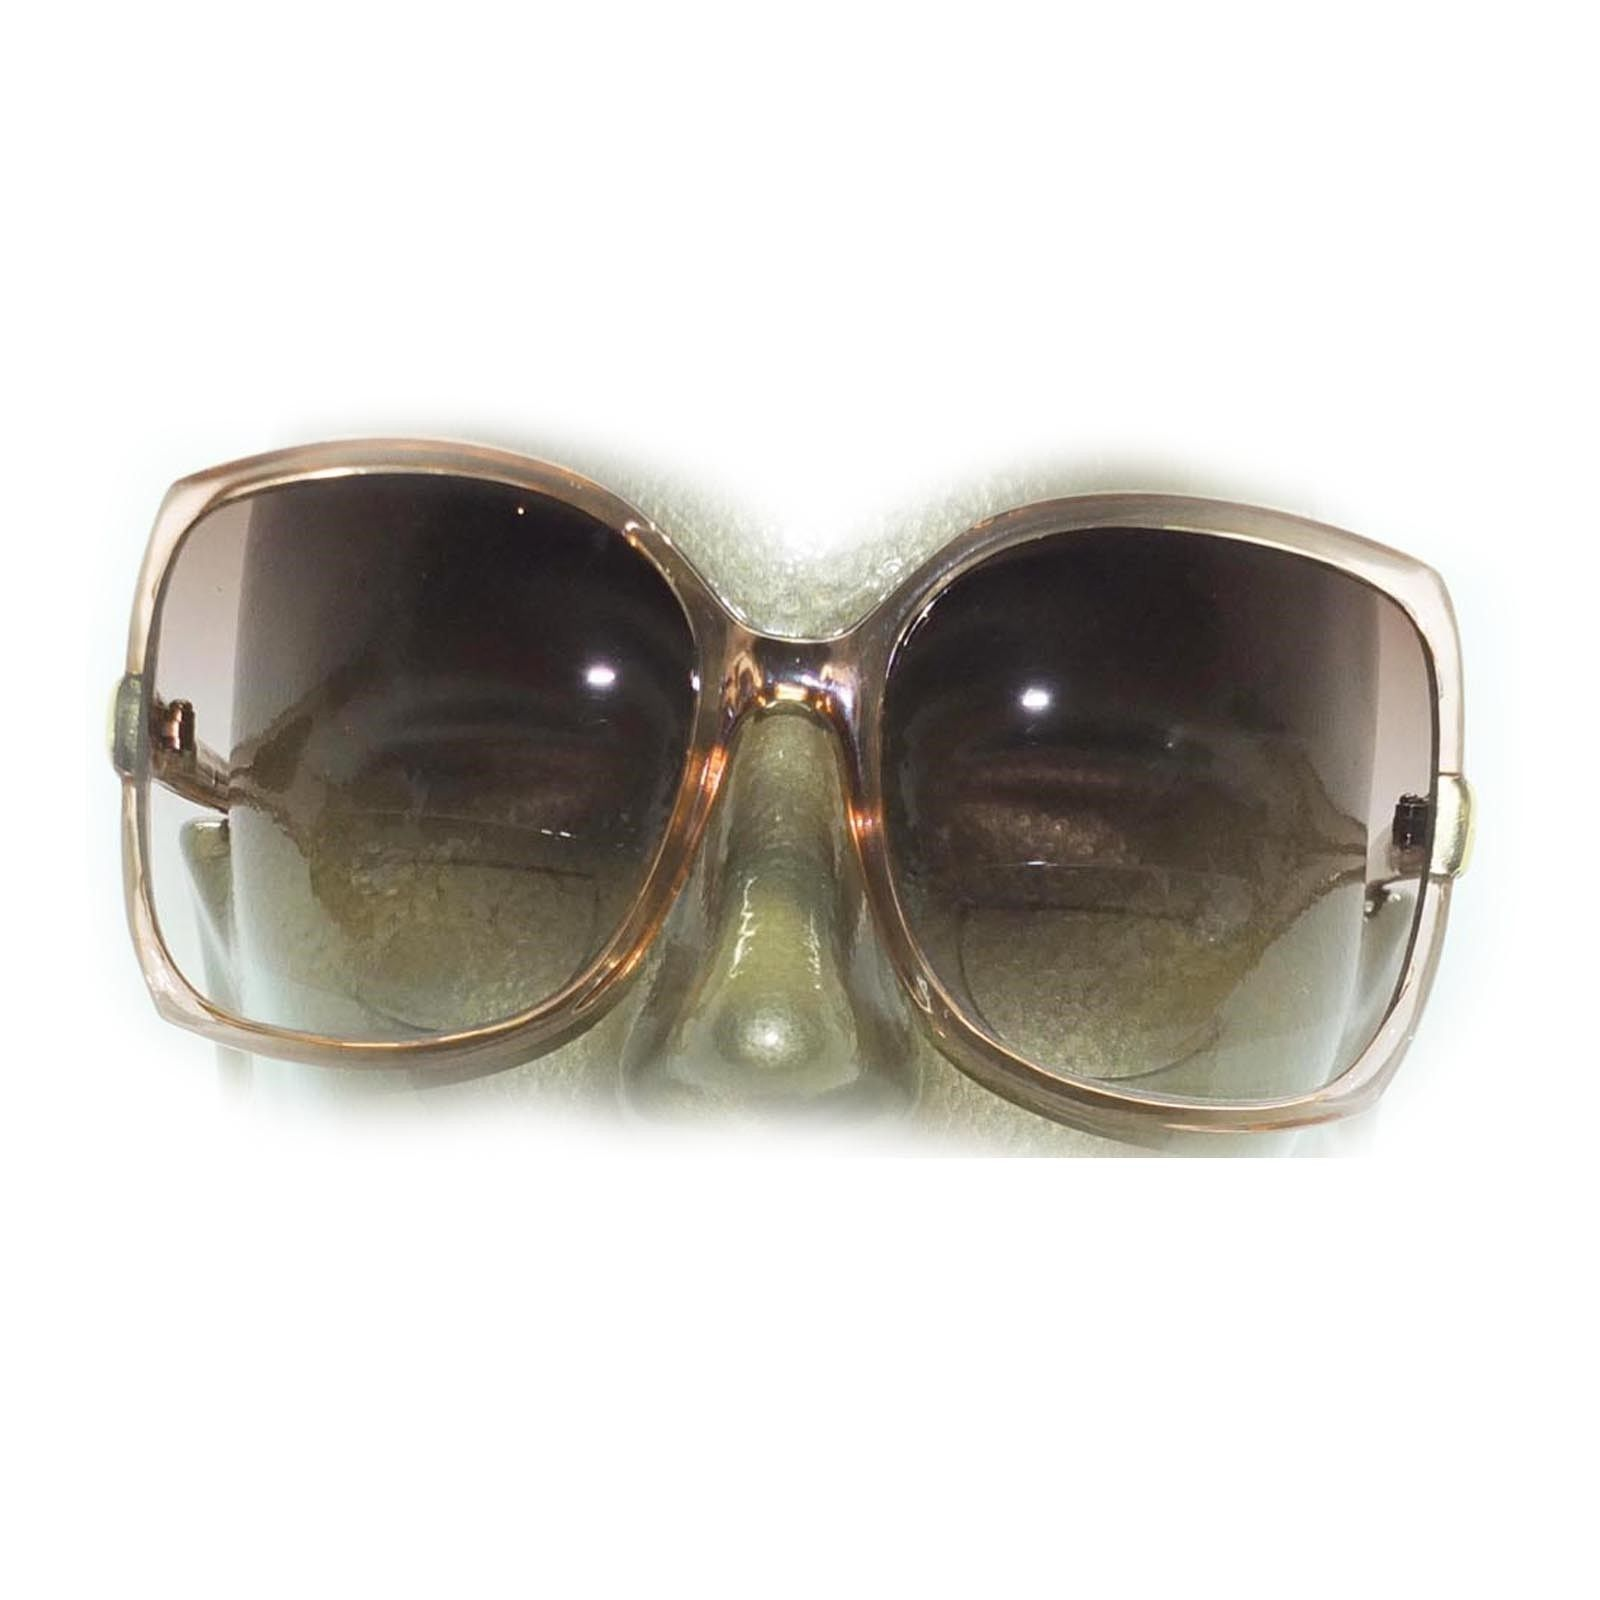 Big Bold Bifocal Sunglasses Readers Huge Runway Fashion Caramel Frame +2.75 Lens